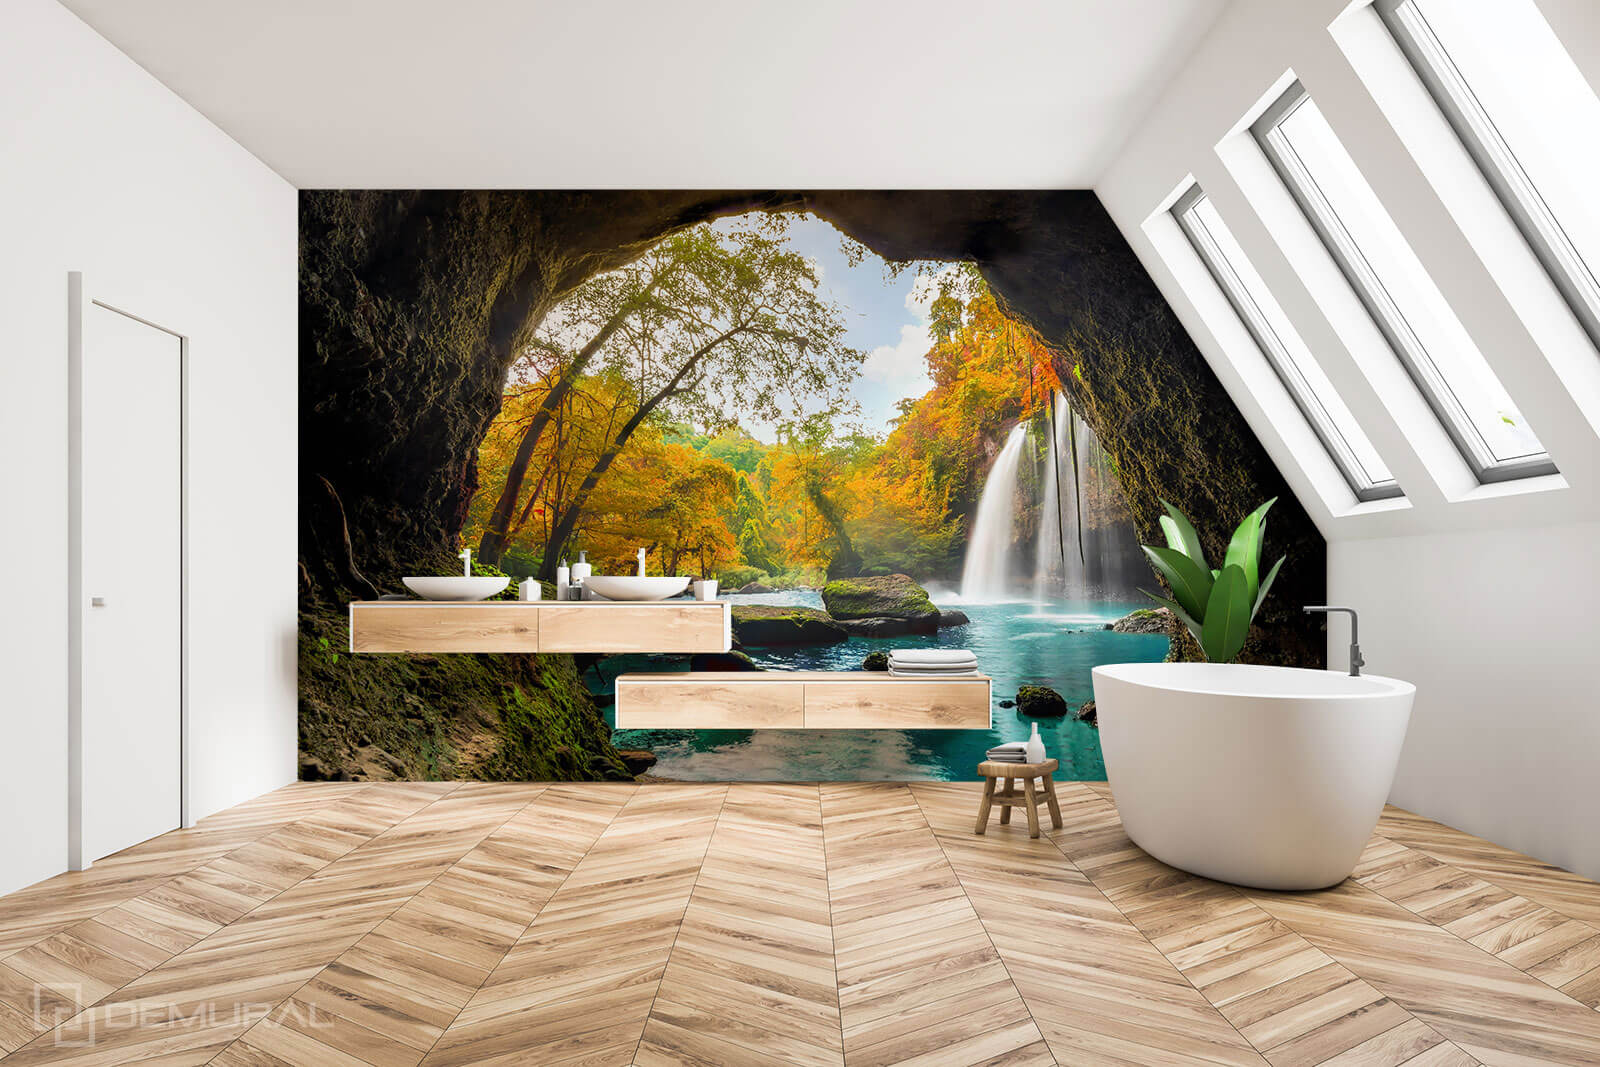 Photo wallpaper Private Oasis - Photo wallpaper in bathroom - Demural